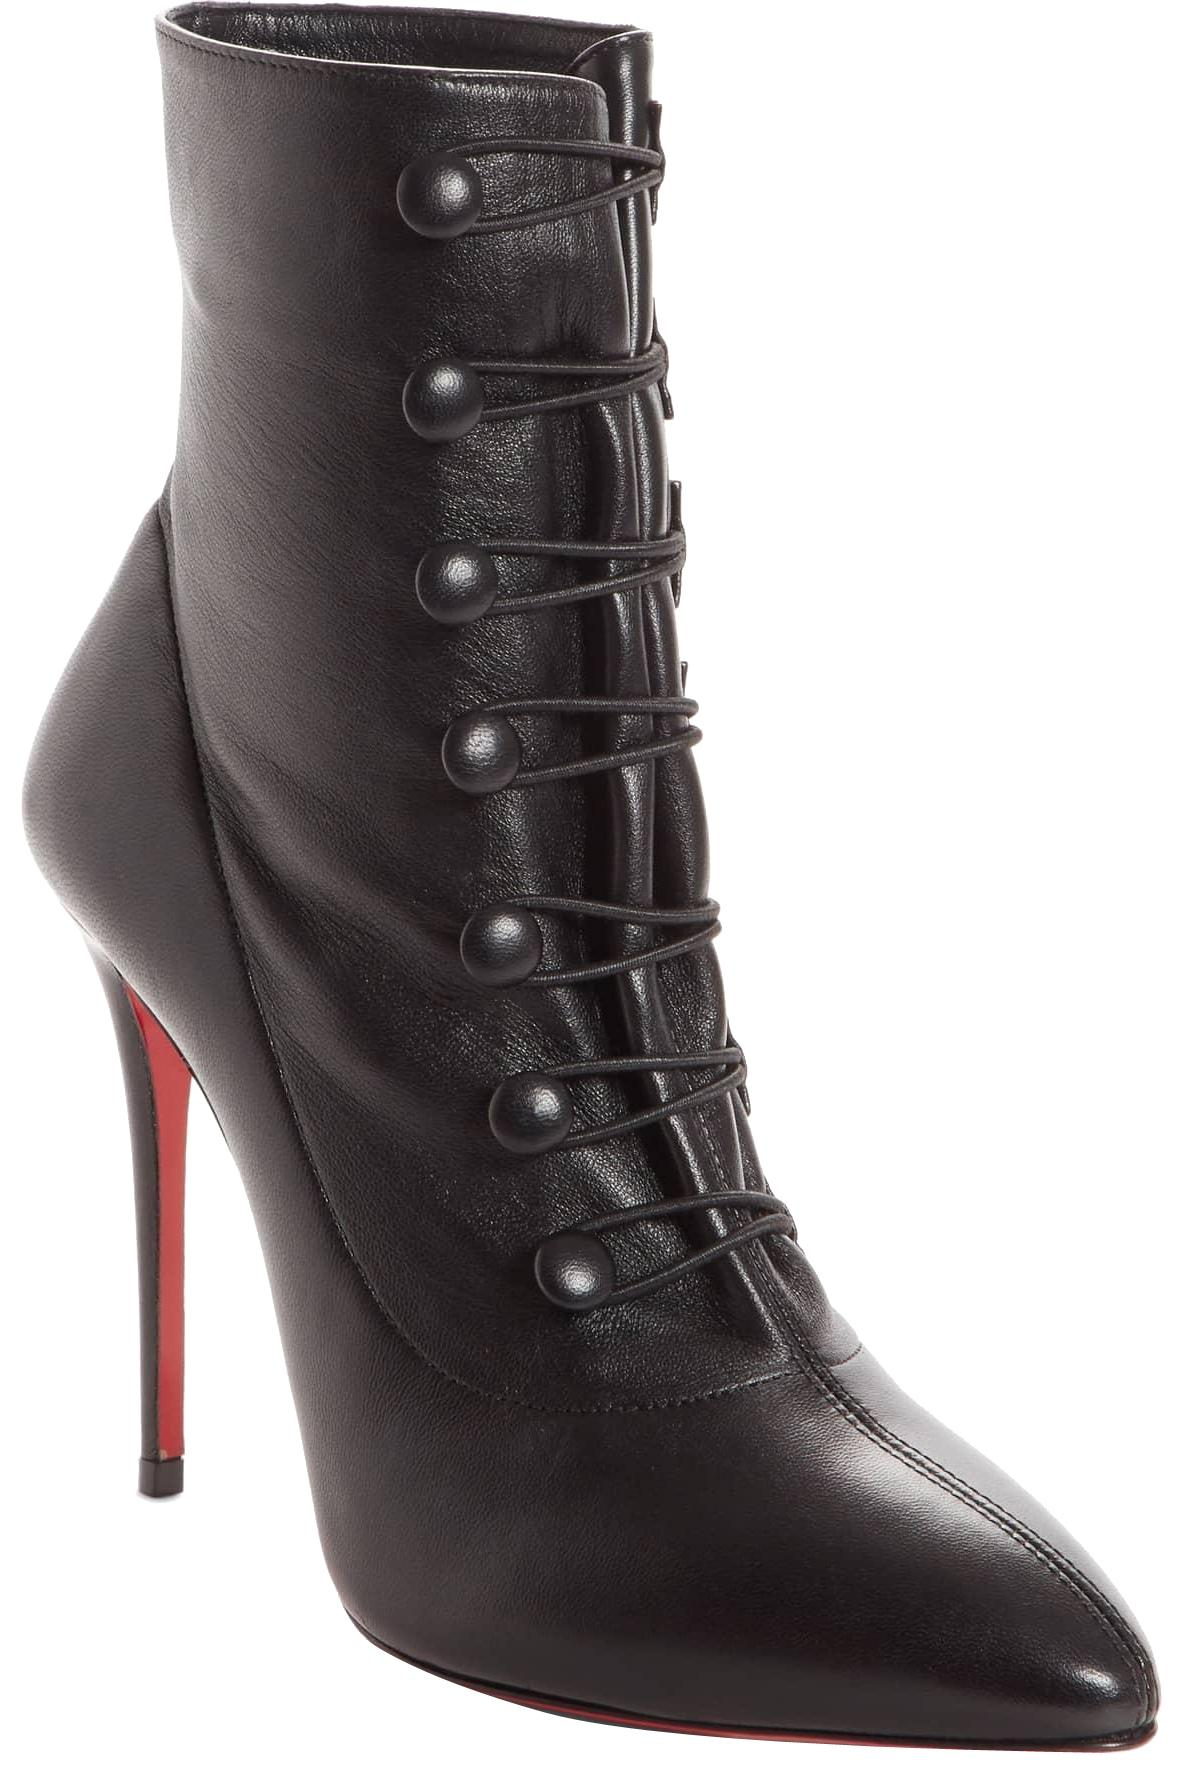 Christian Louboutin Black New French Tutu Pointy Toe 38 Boots/Booties Size US 8 Regular (M, B)